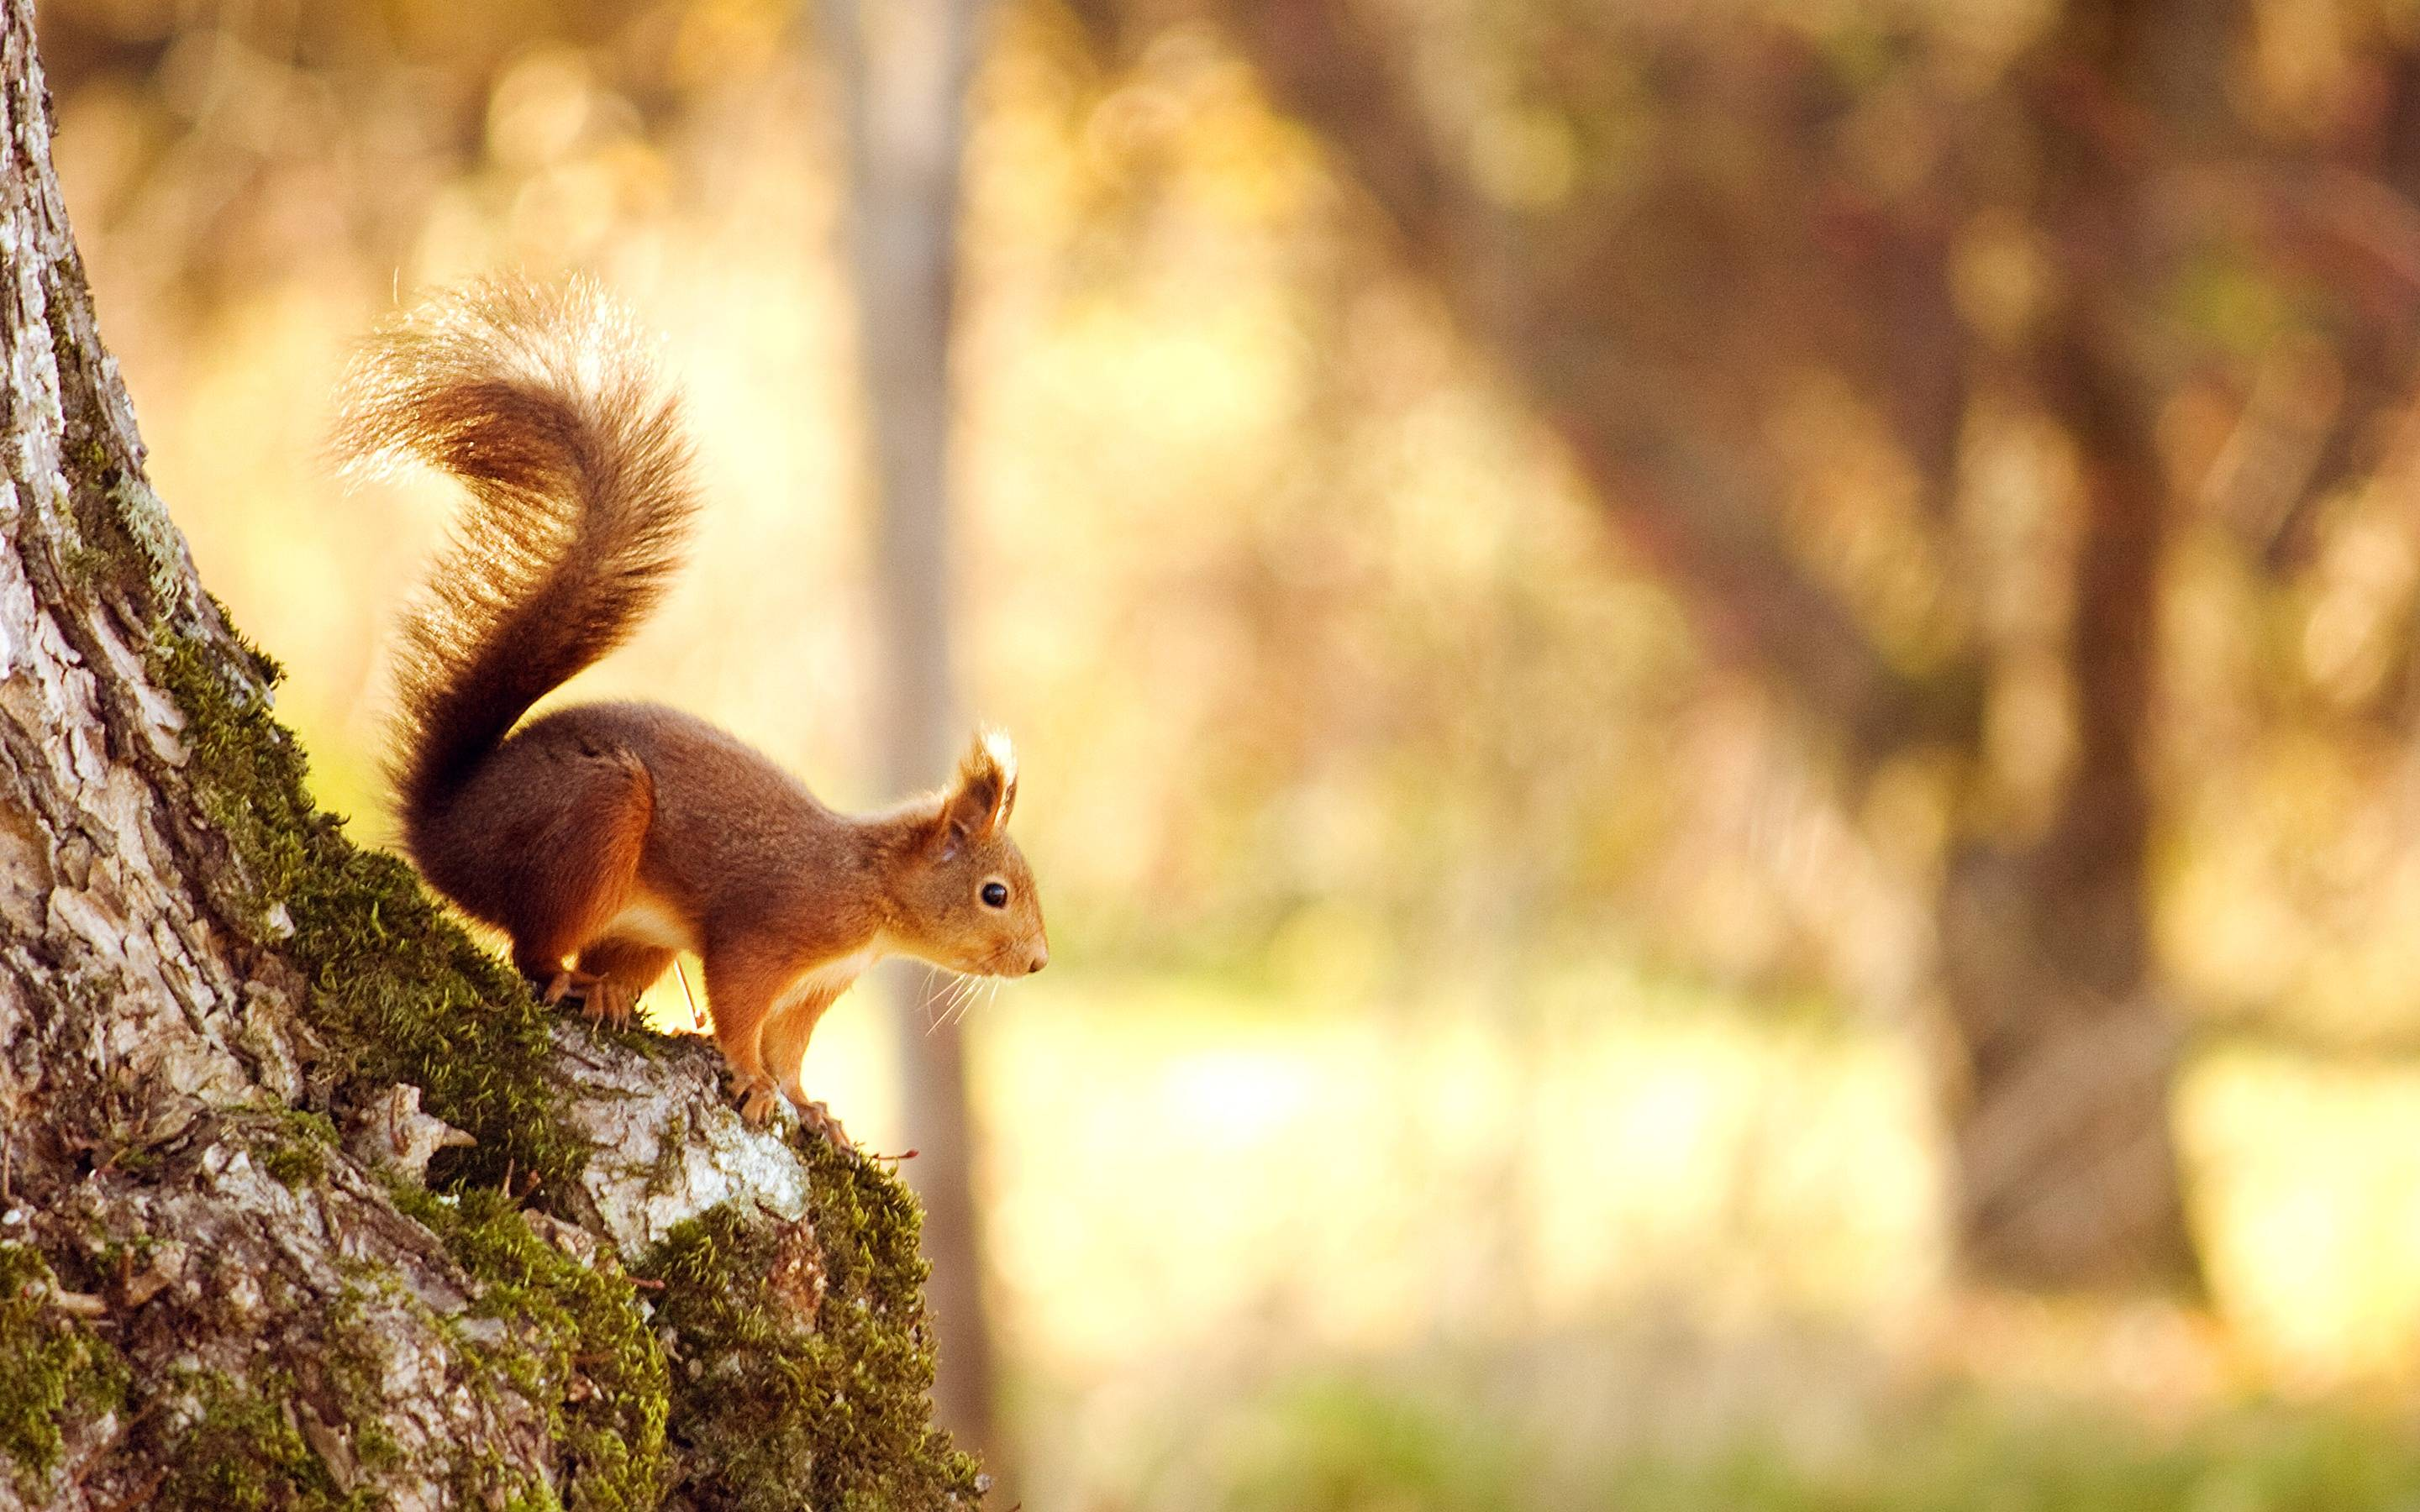 squirrel wallpaper - photo #4